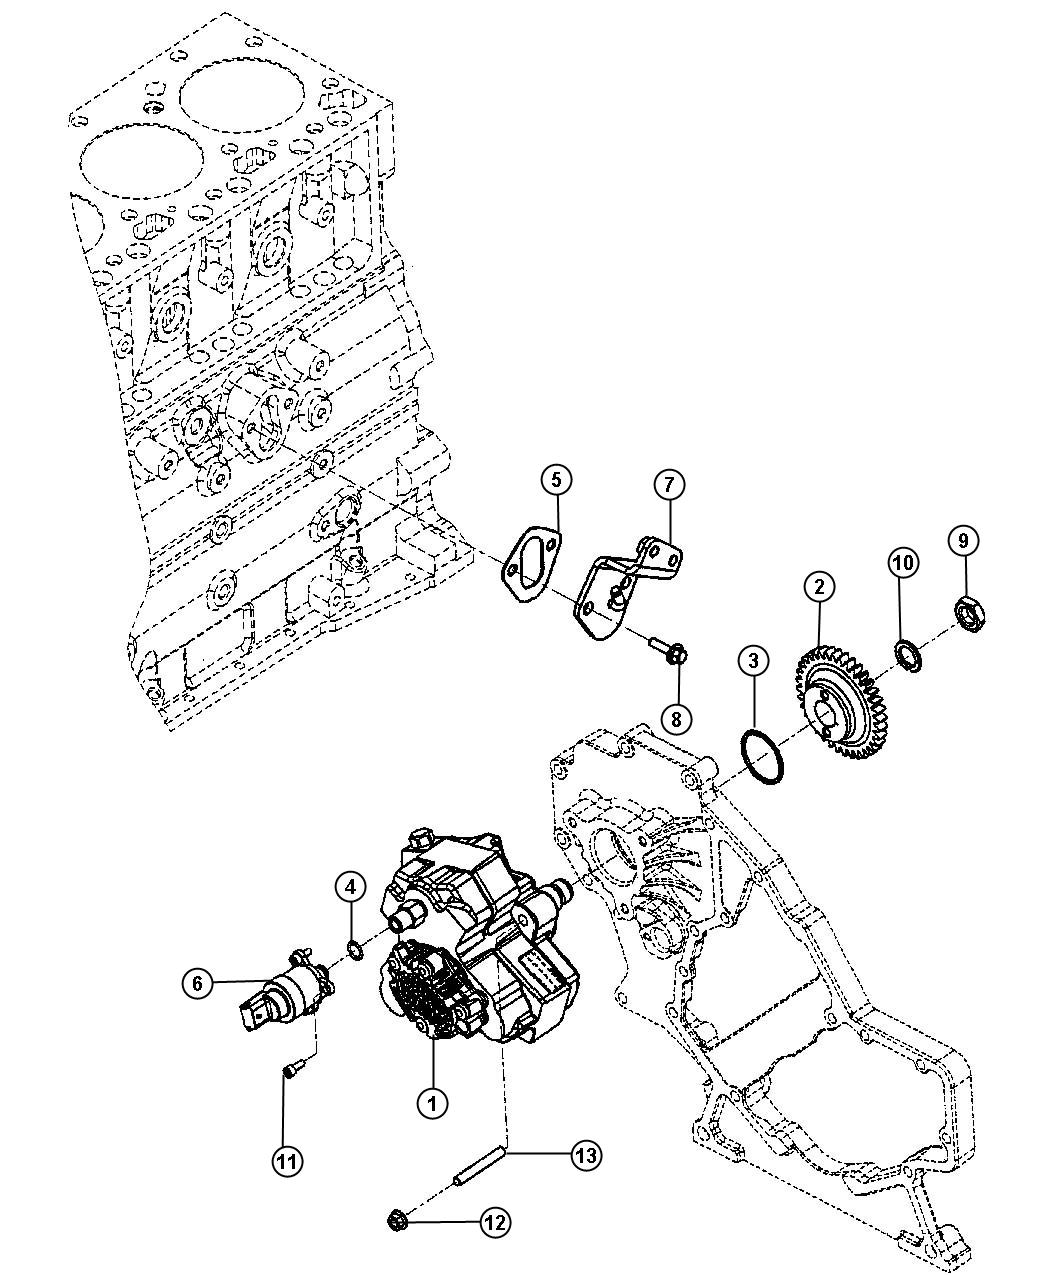 [DIAGRAM] Delphi Fa10003 Fuel Pump Wiring Harness